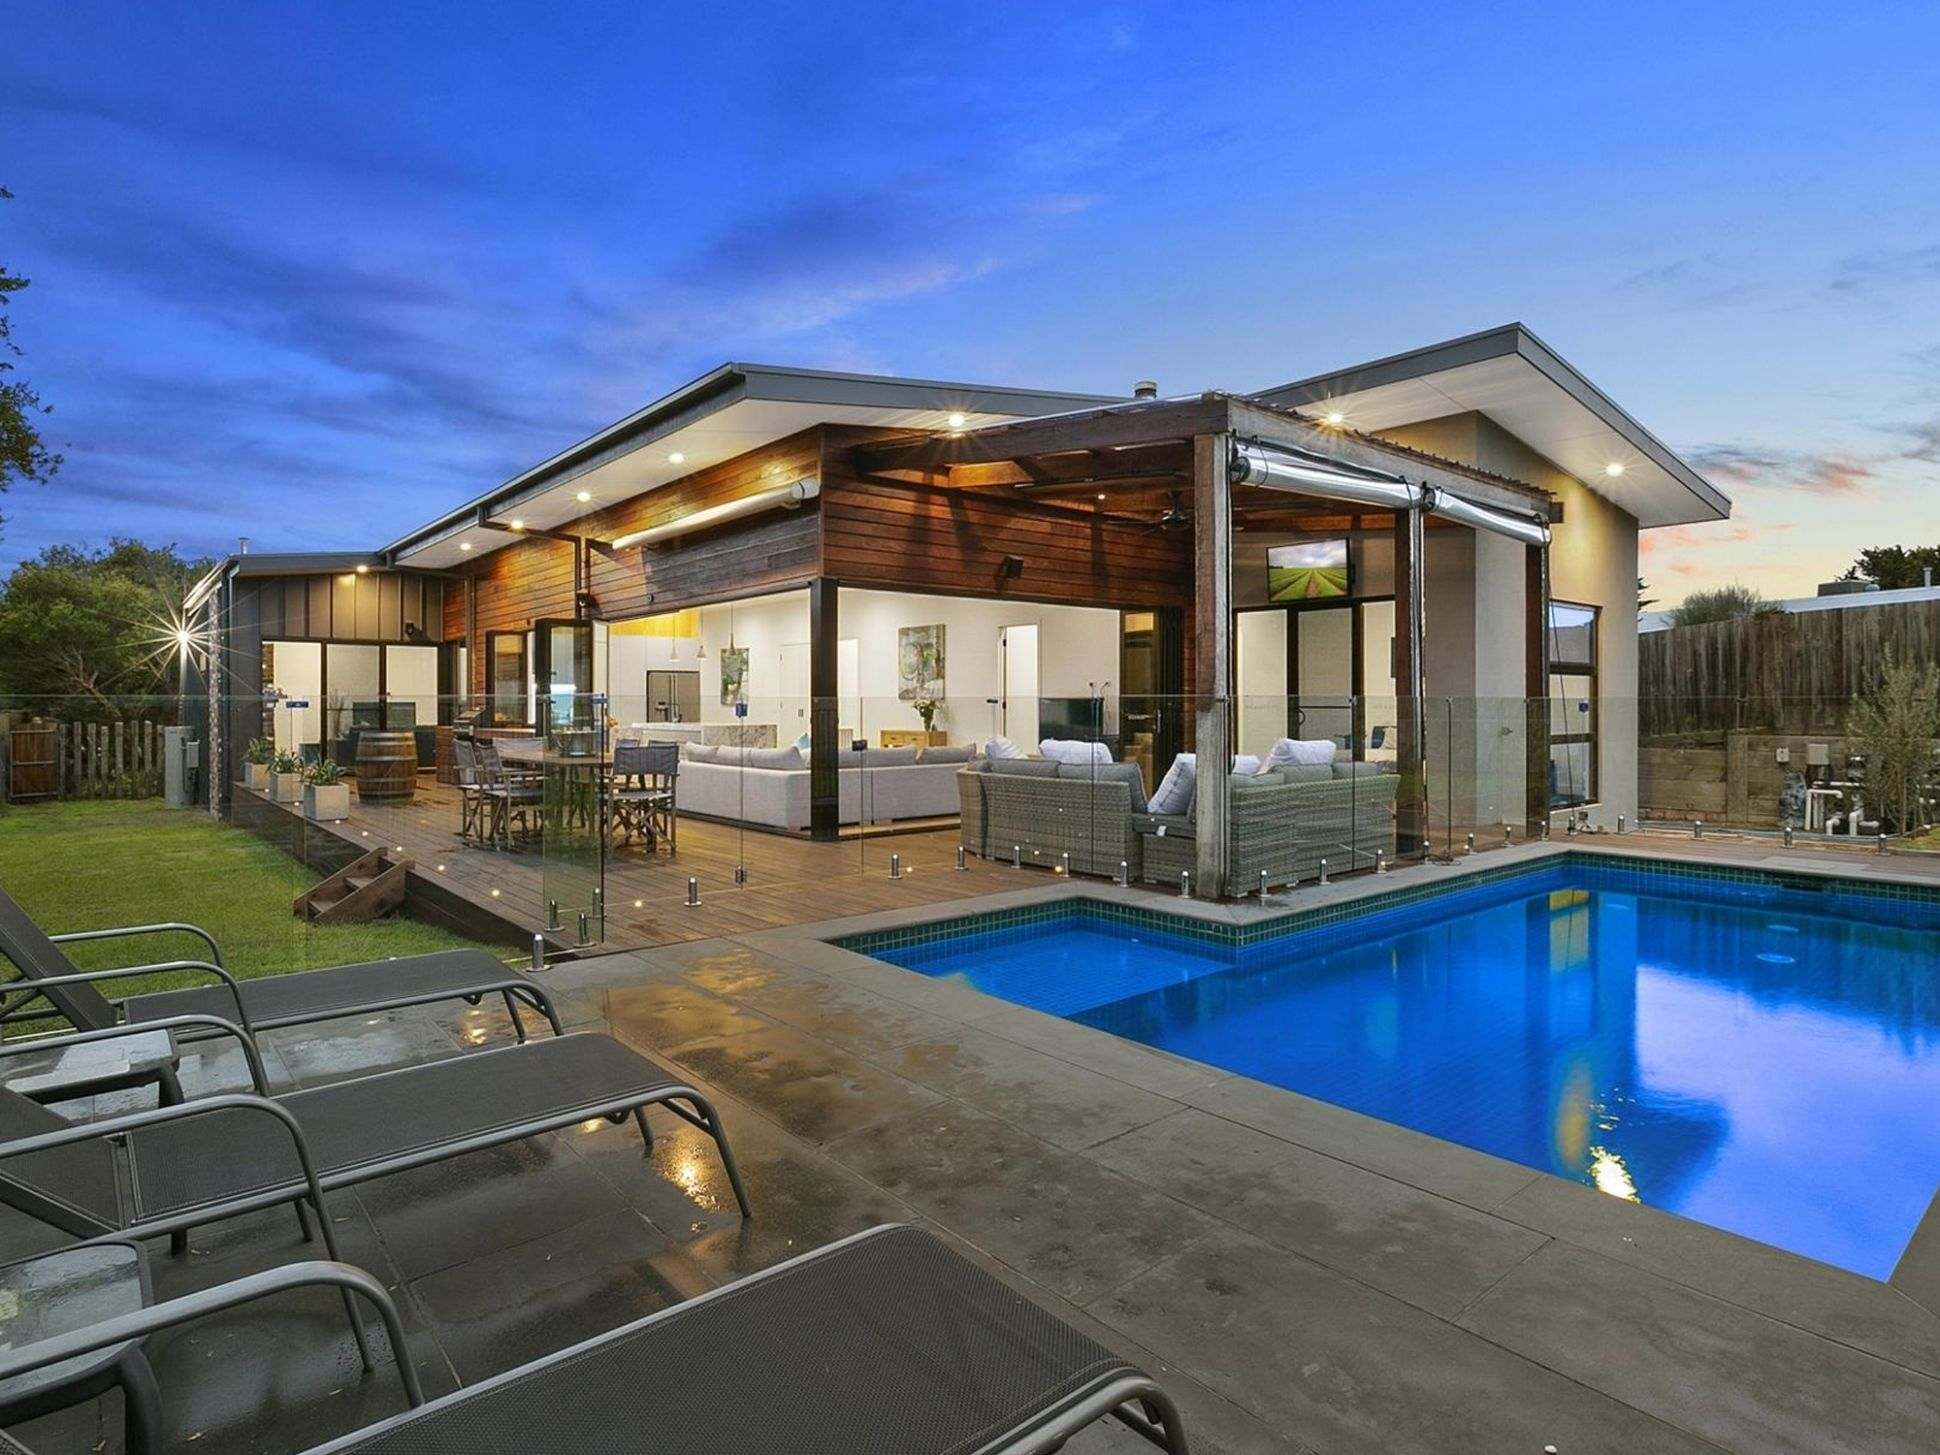 Pool Ideas - Swimming Pool Photos & Landscaping Designs with Pool - pool landscaping ideas queensland